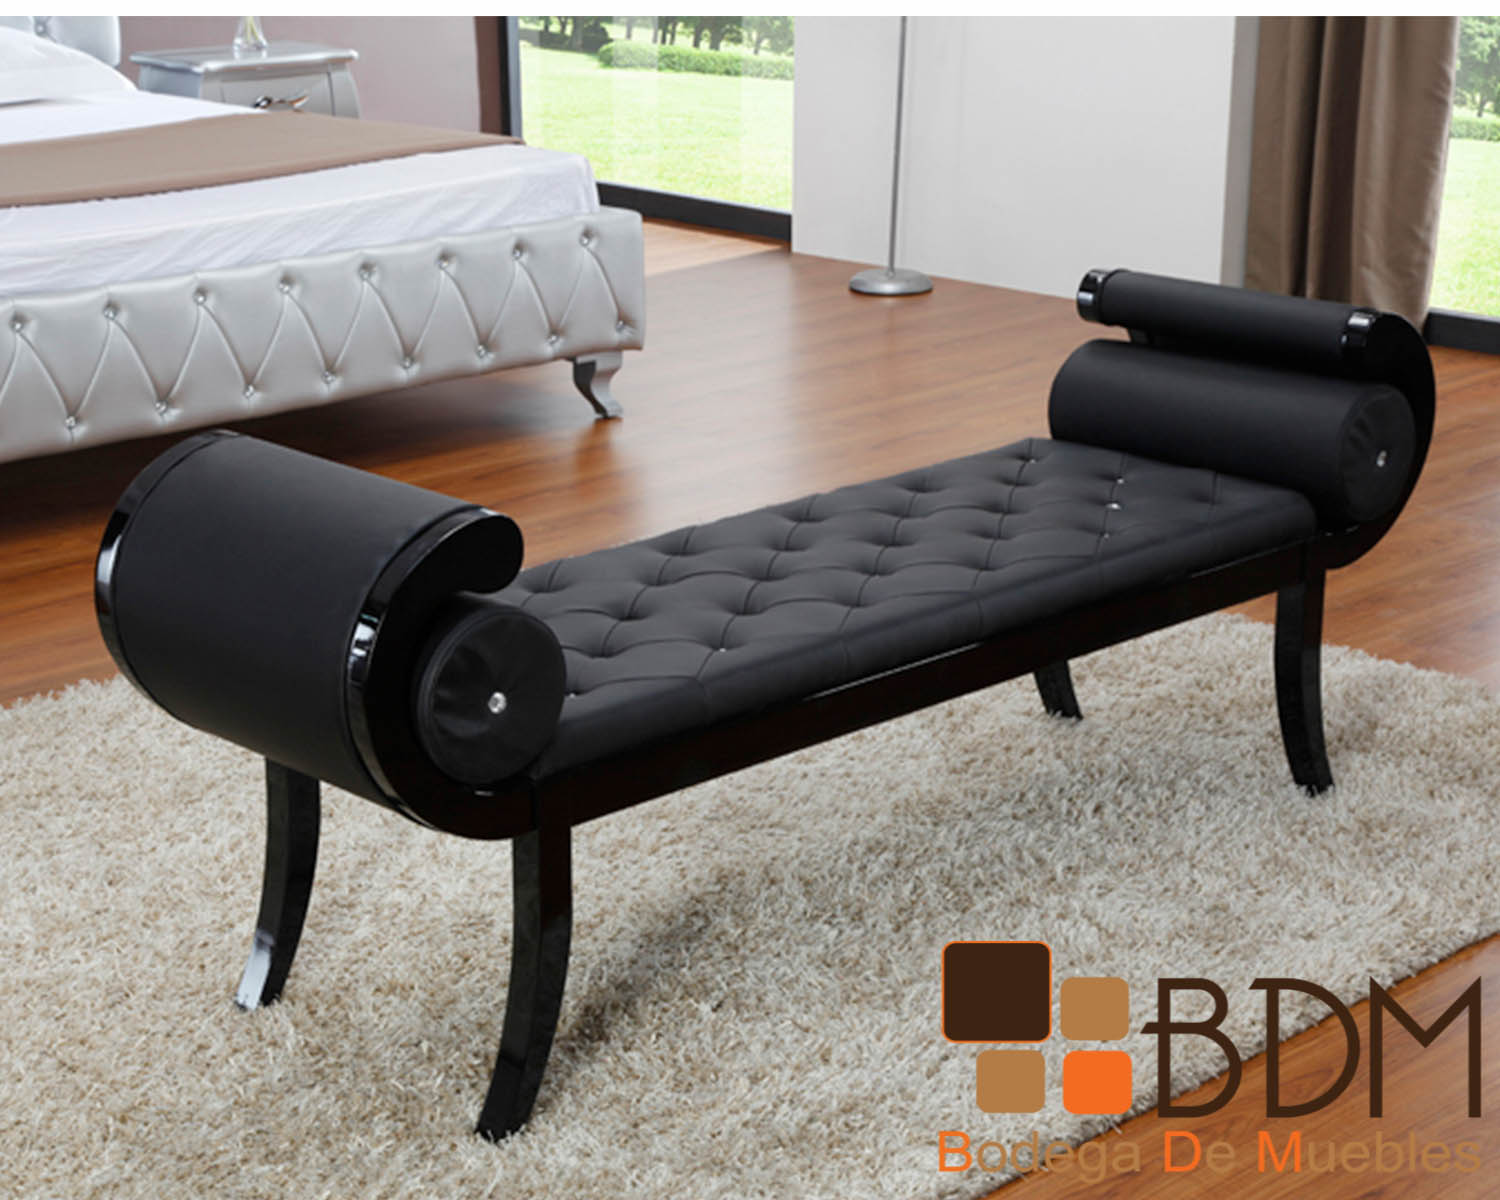 Banca Vanguardista en Color Negro Furniture - Bodega de Muebles ...